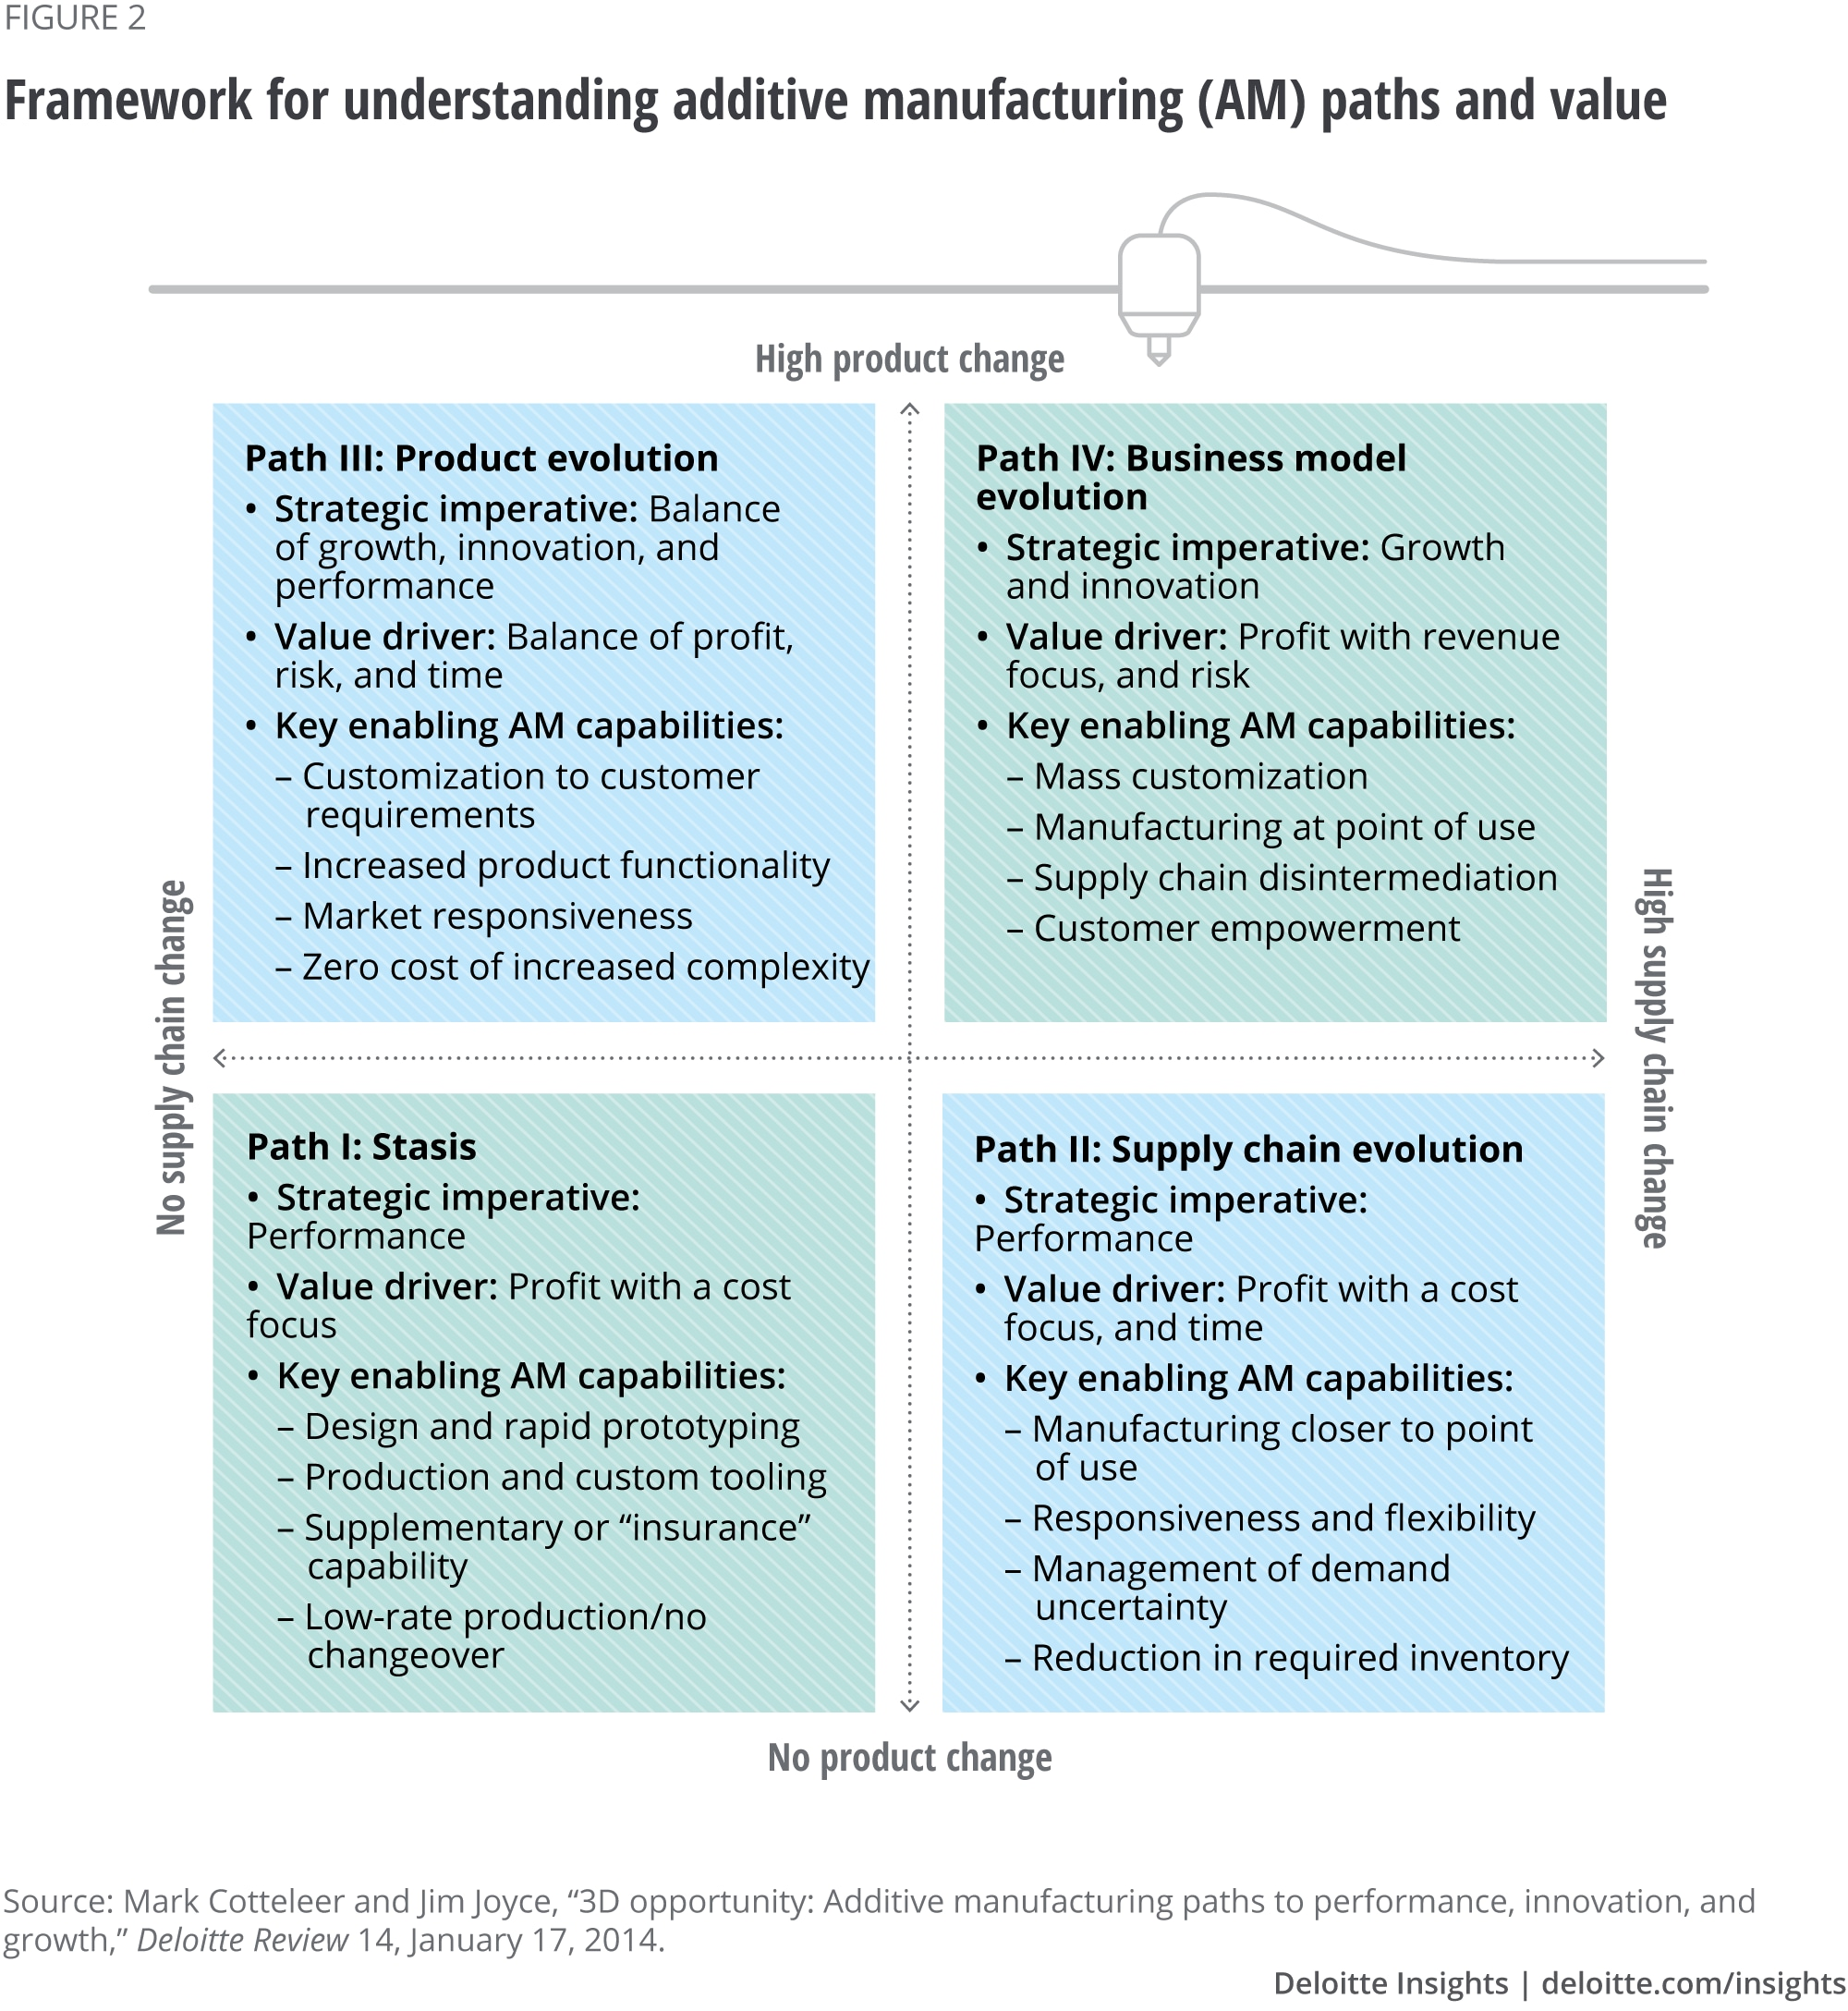 Framework for understanding additive manufacturing (AM) paths and value